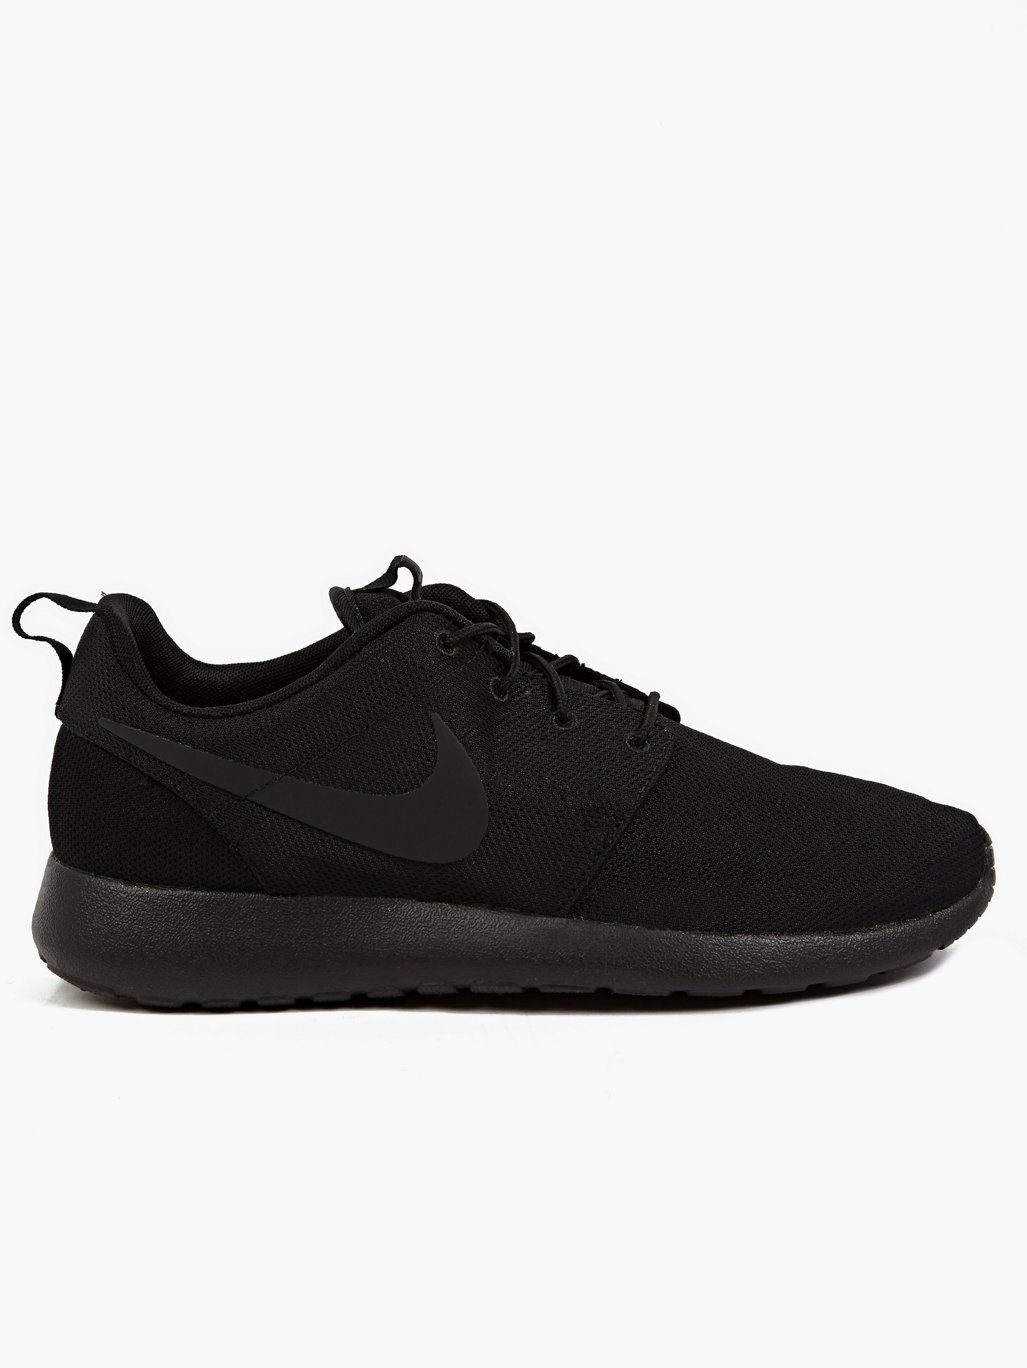 vans grande taille - 1000+ images about Nike on Pinterest | Nike Blazers, Nike Cortez ...